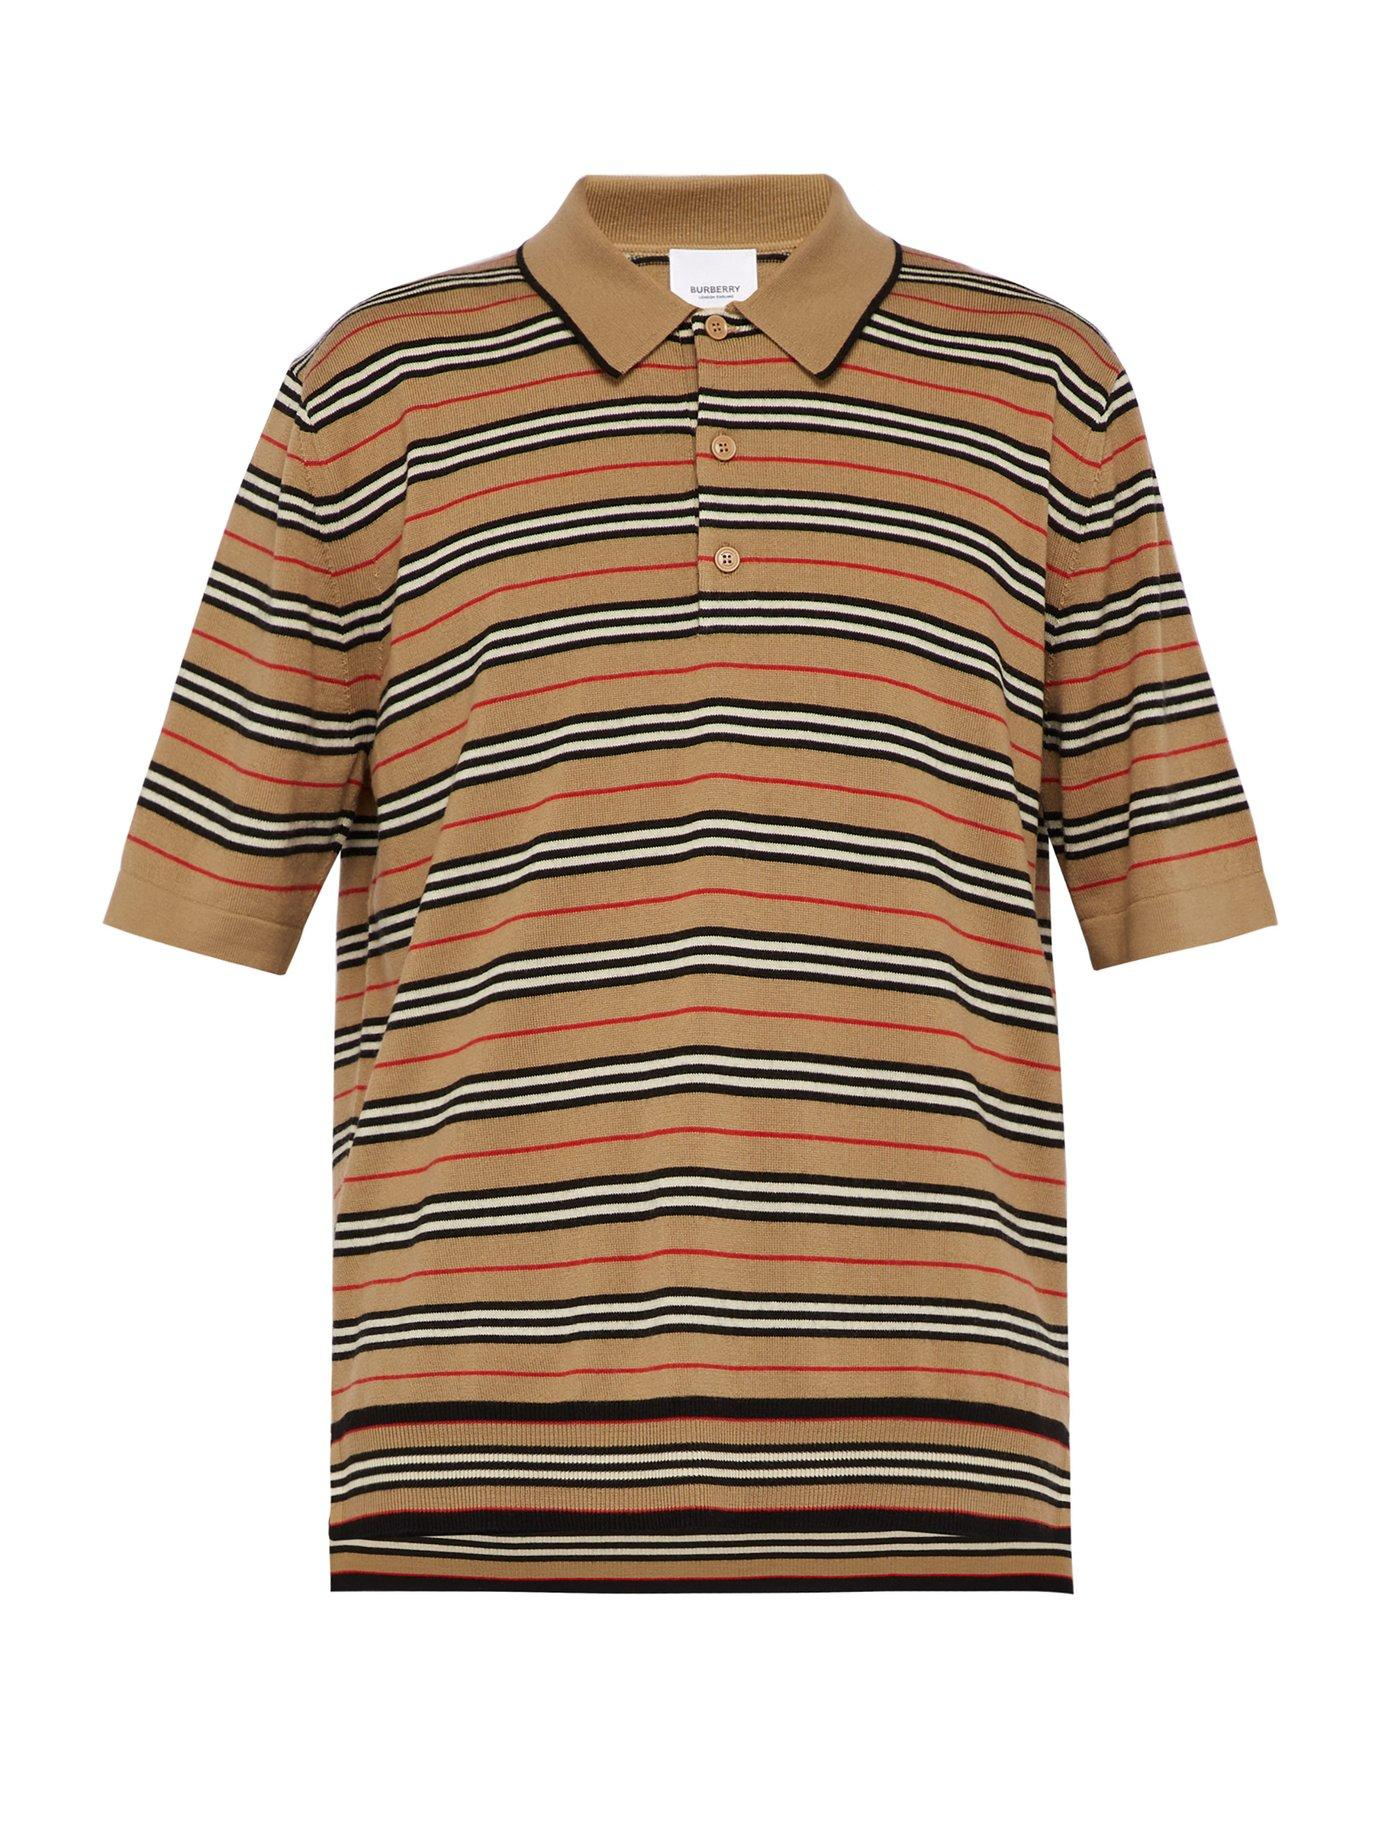 2b725c4b1 Lyst - Burberry Icon Stripe Merino Wool Polo Shirt in Natural for ...